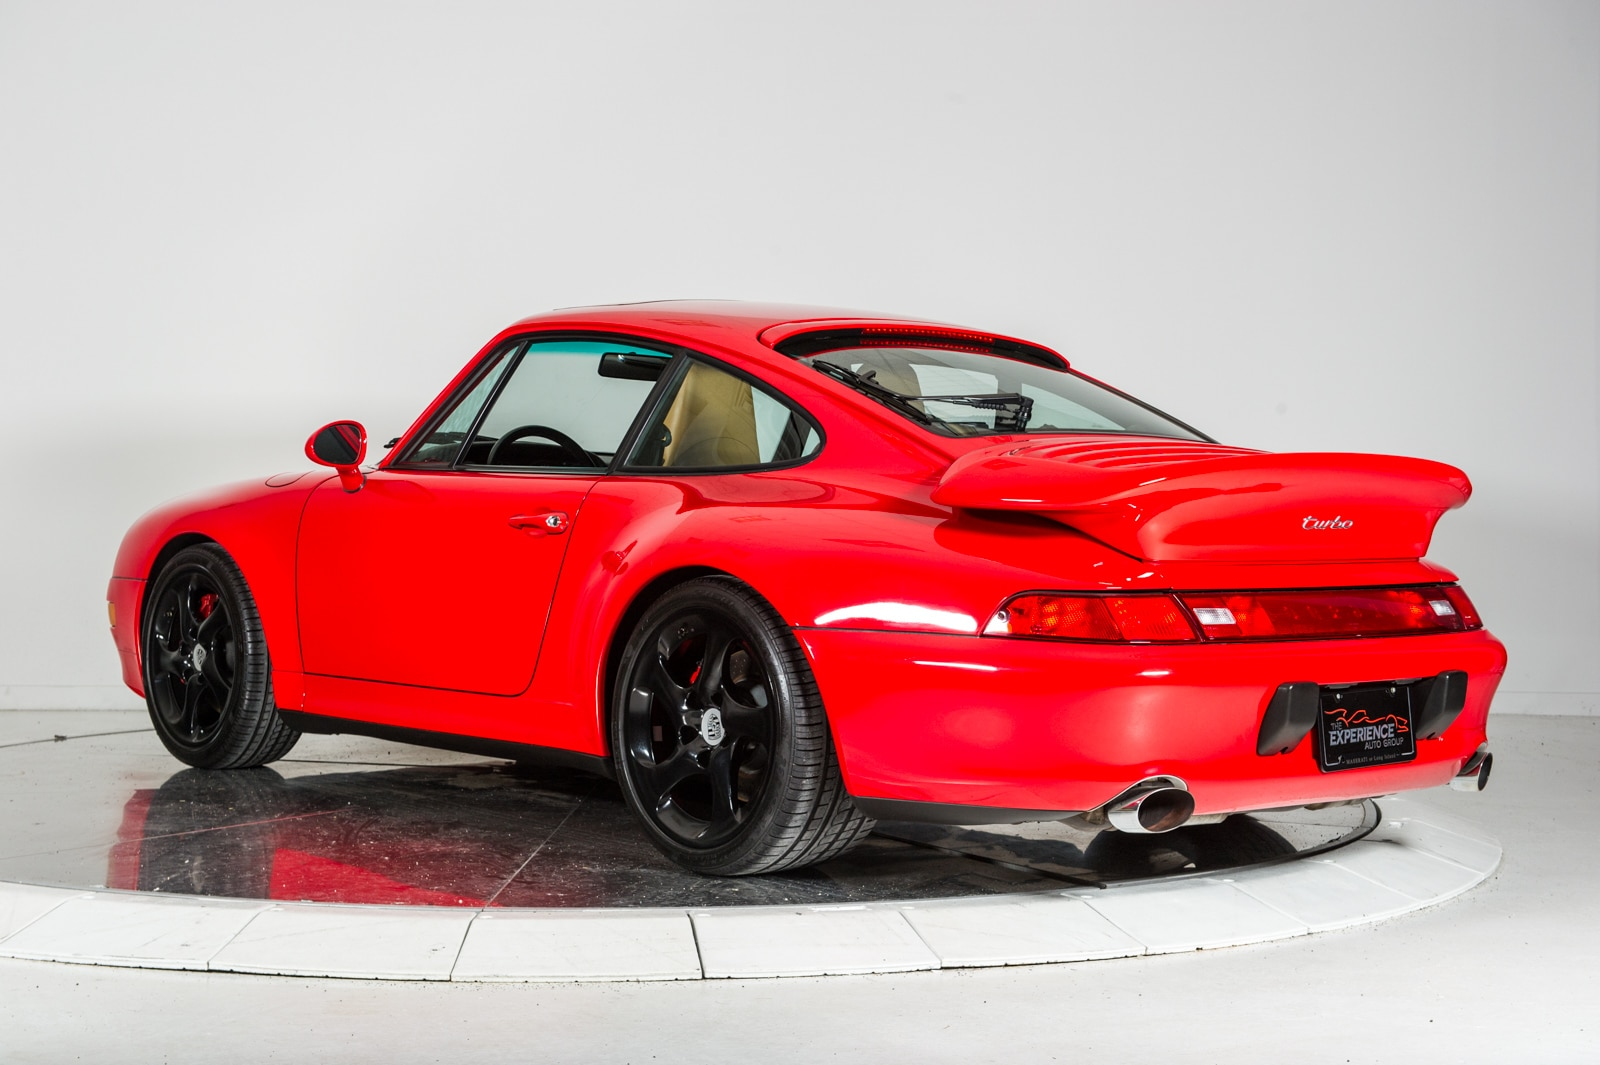 used 1996 porsche 911 turbo for sale fort lauderdale fl. Black Bedroom Furniture Sets. Home Design Ideas